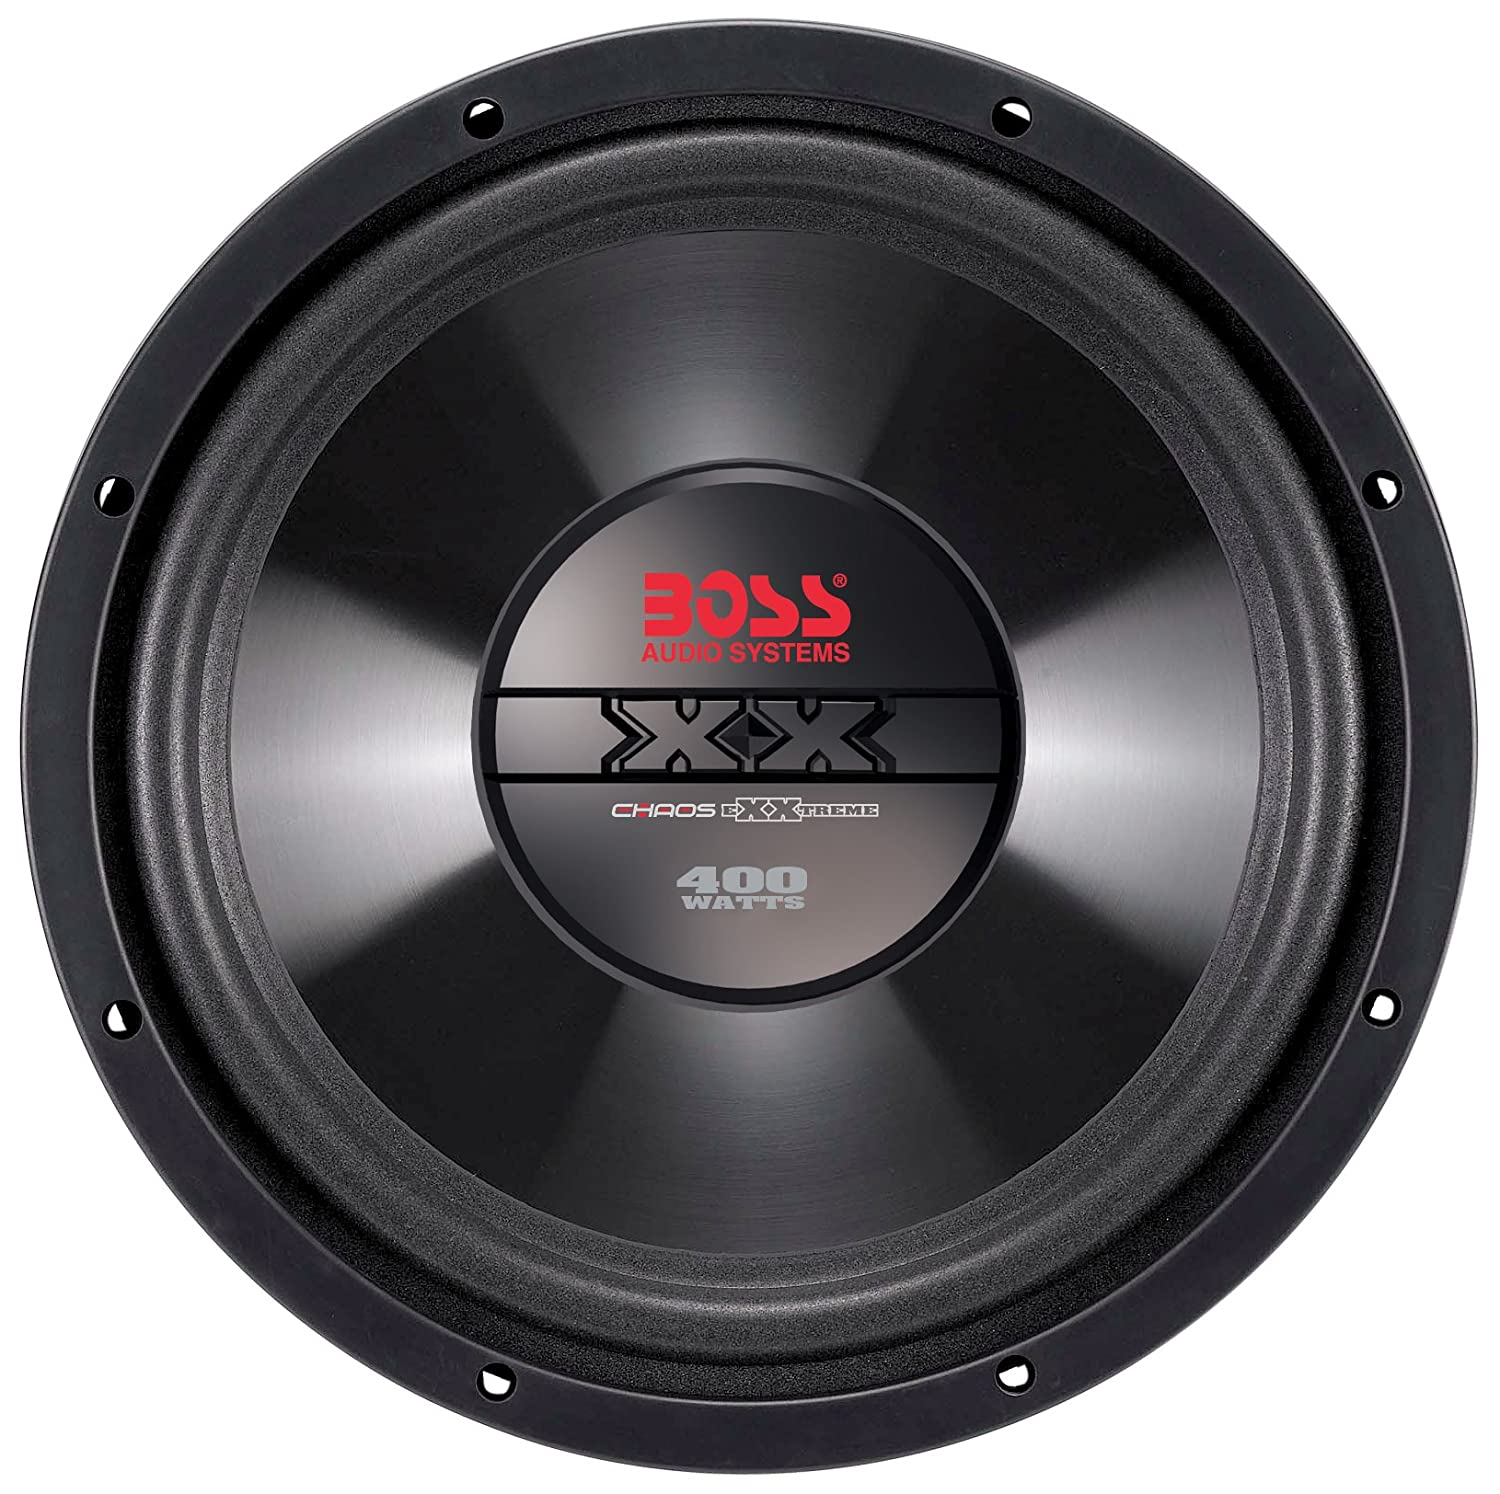 Boss Audio Cx8 400 Watt 8 Inch Single 4 Ohm Voice Coil Car Subwoofer Wiring Diagram For 12 Systems Inc